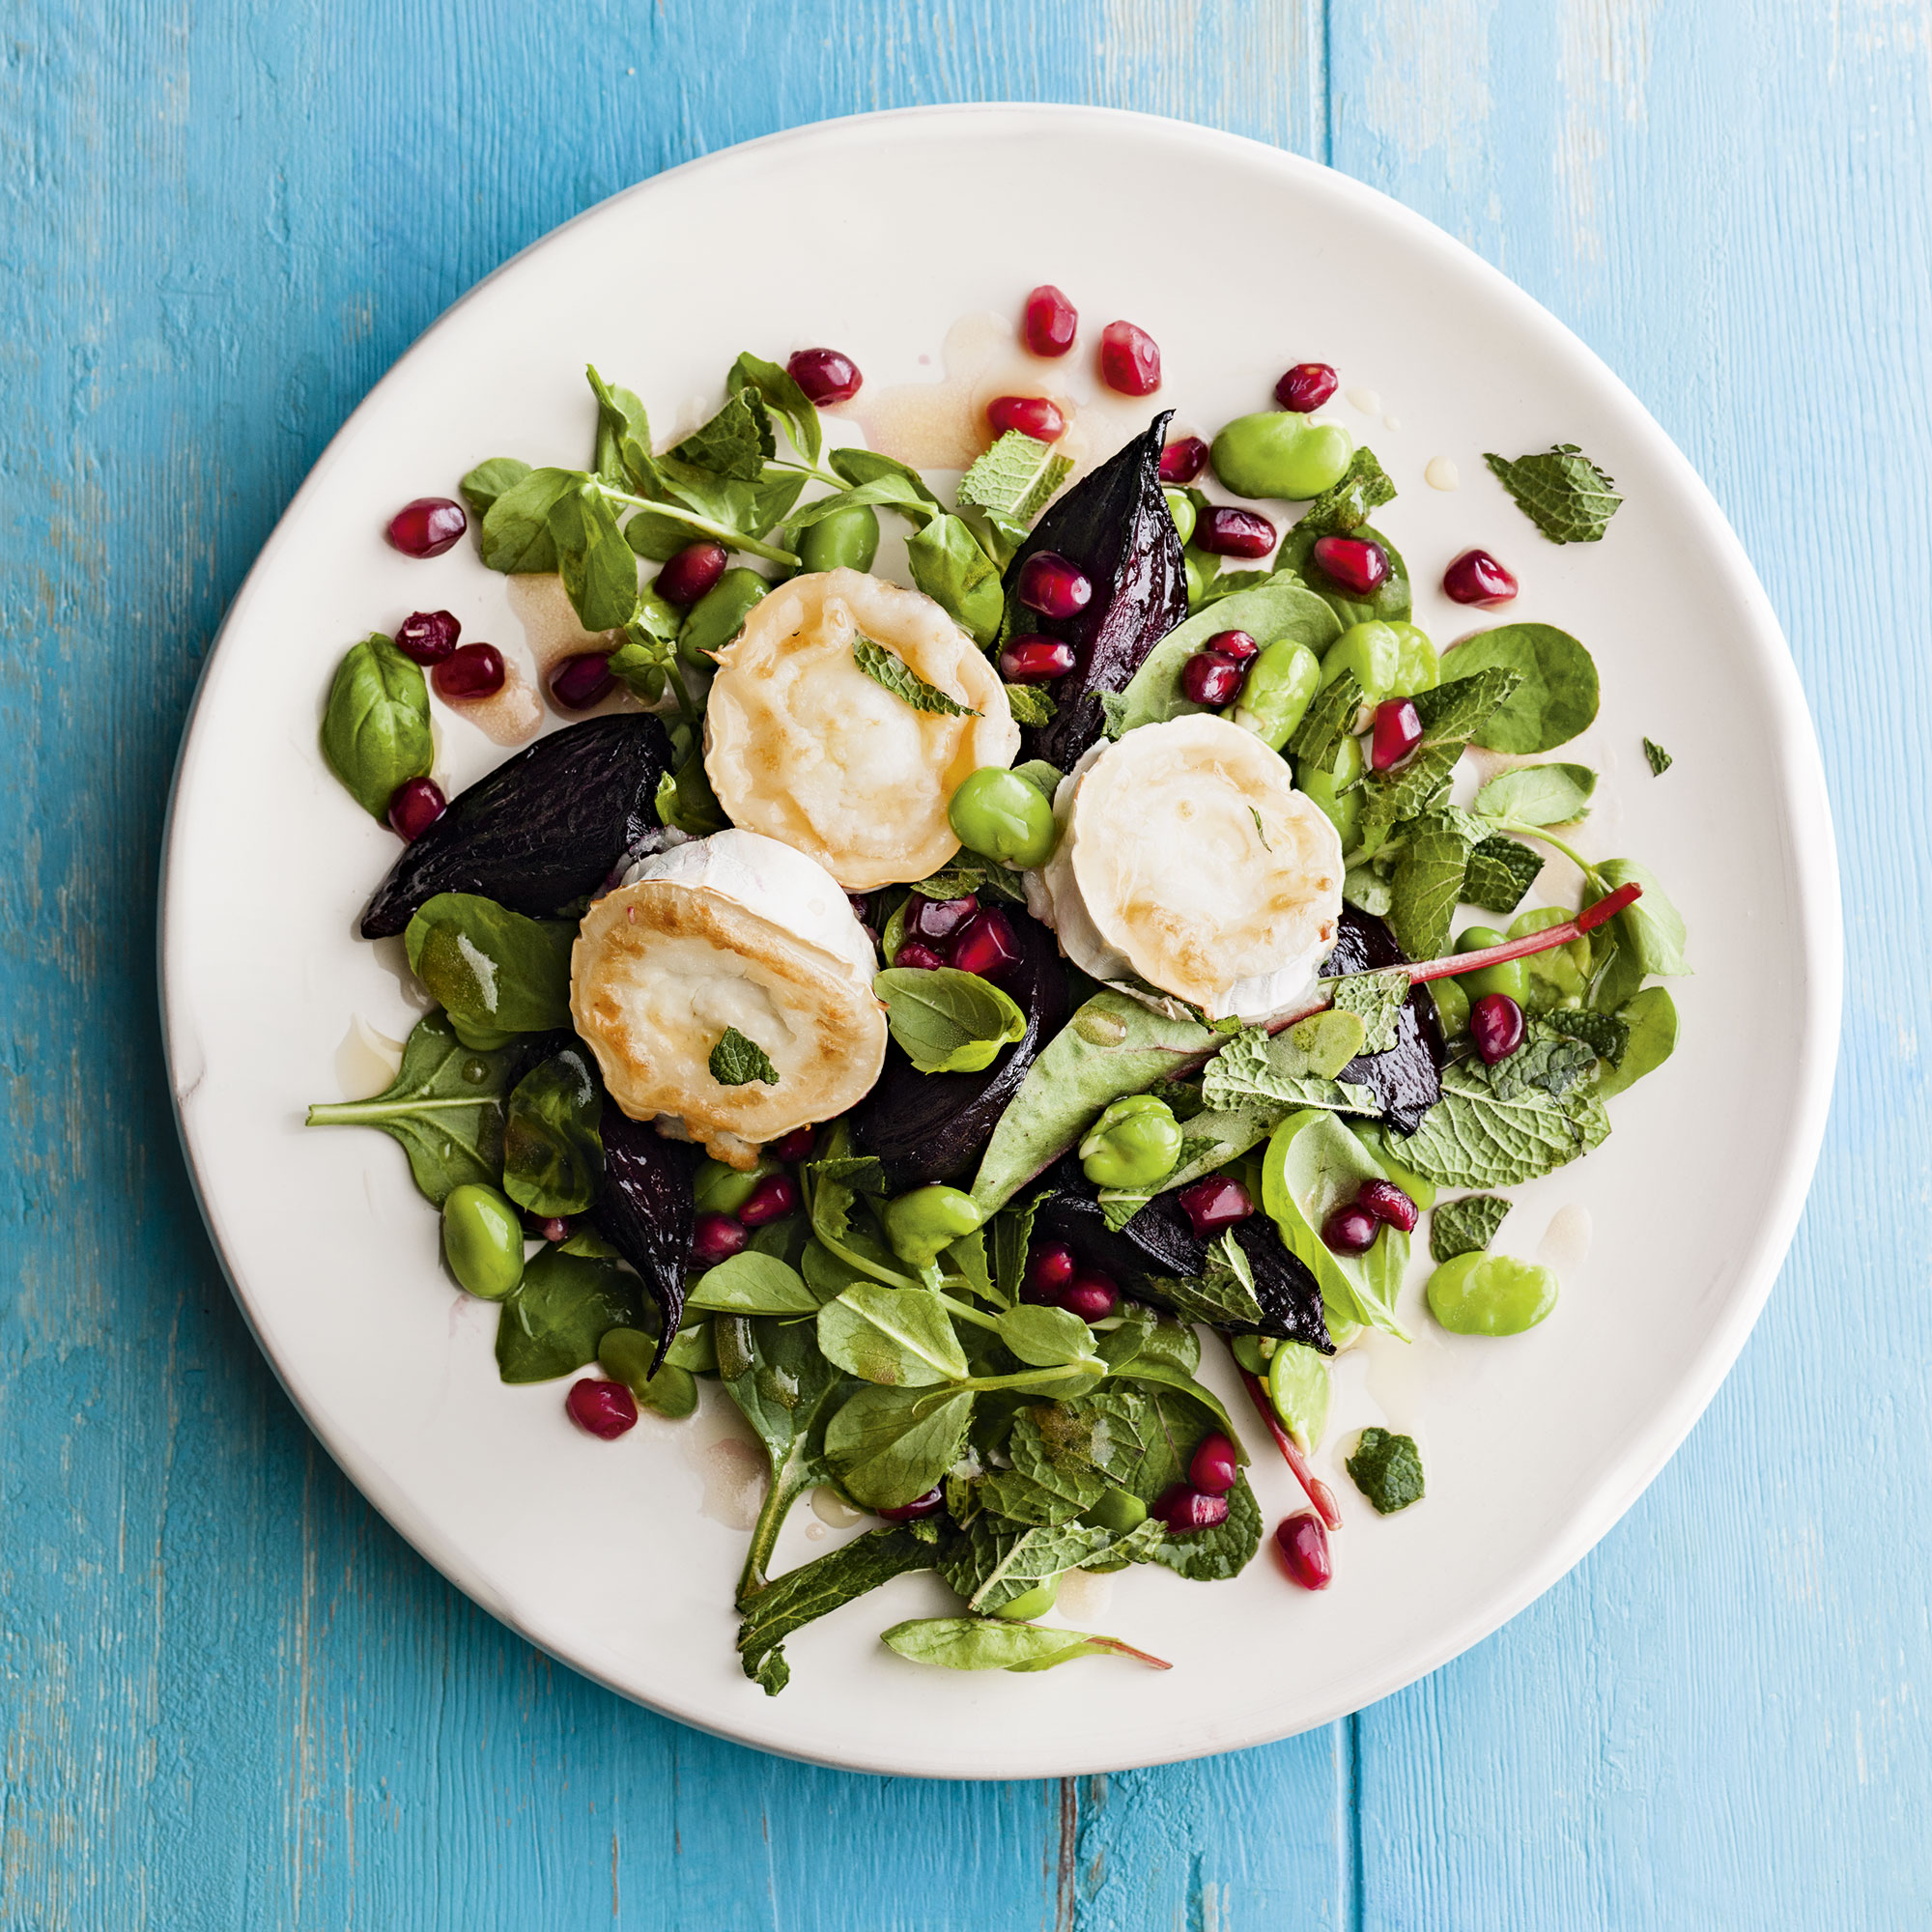 Beetroot and goat's cheese salad photo